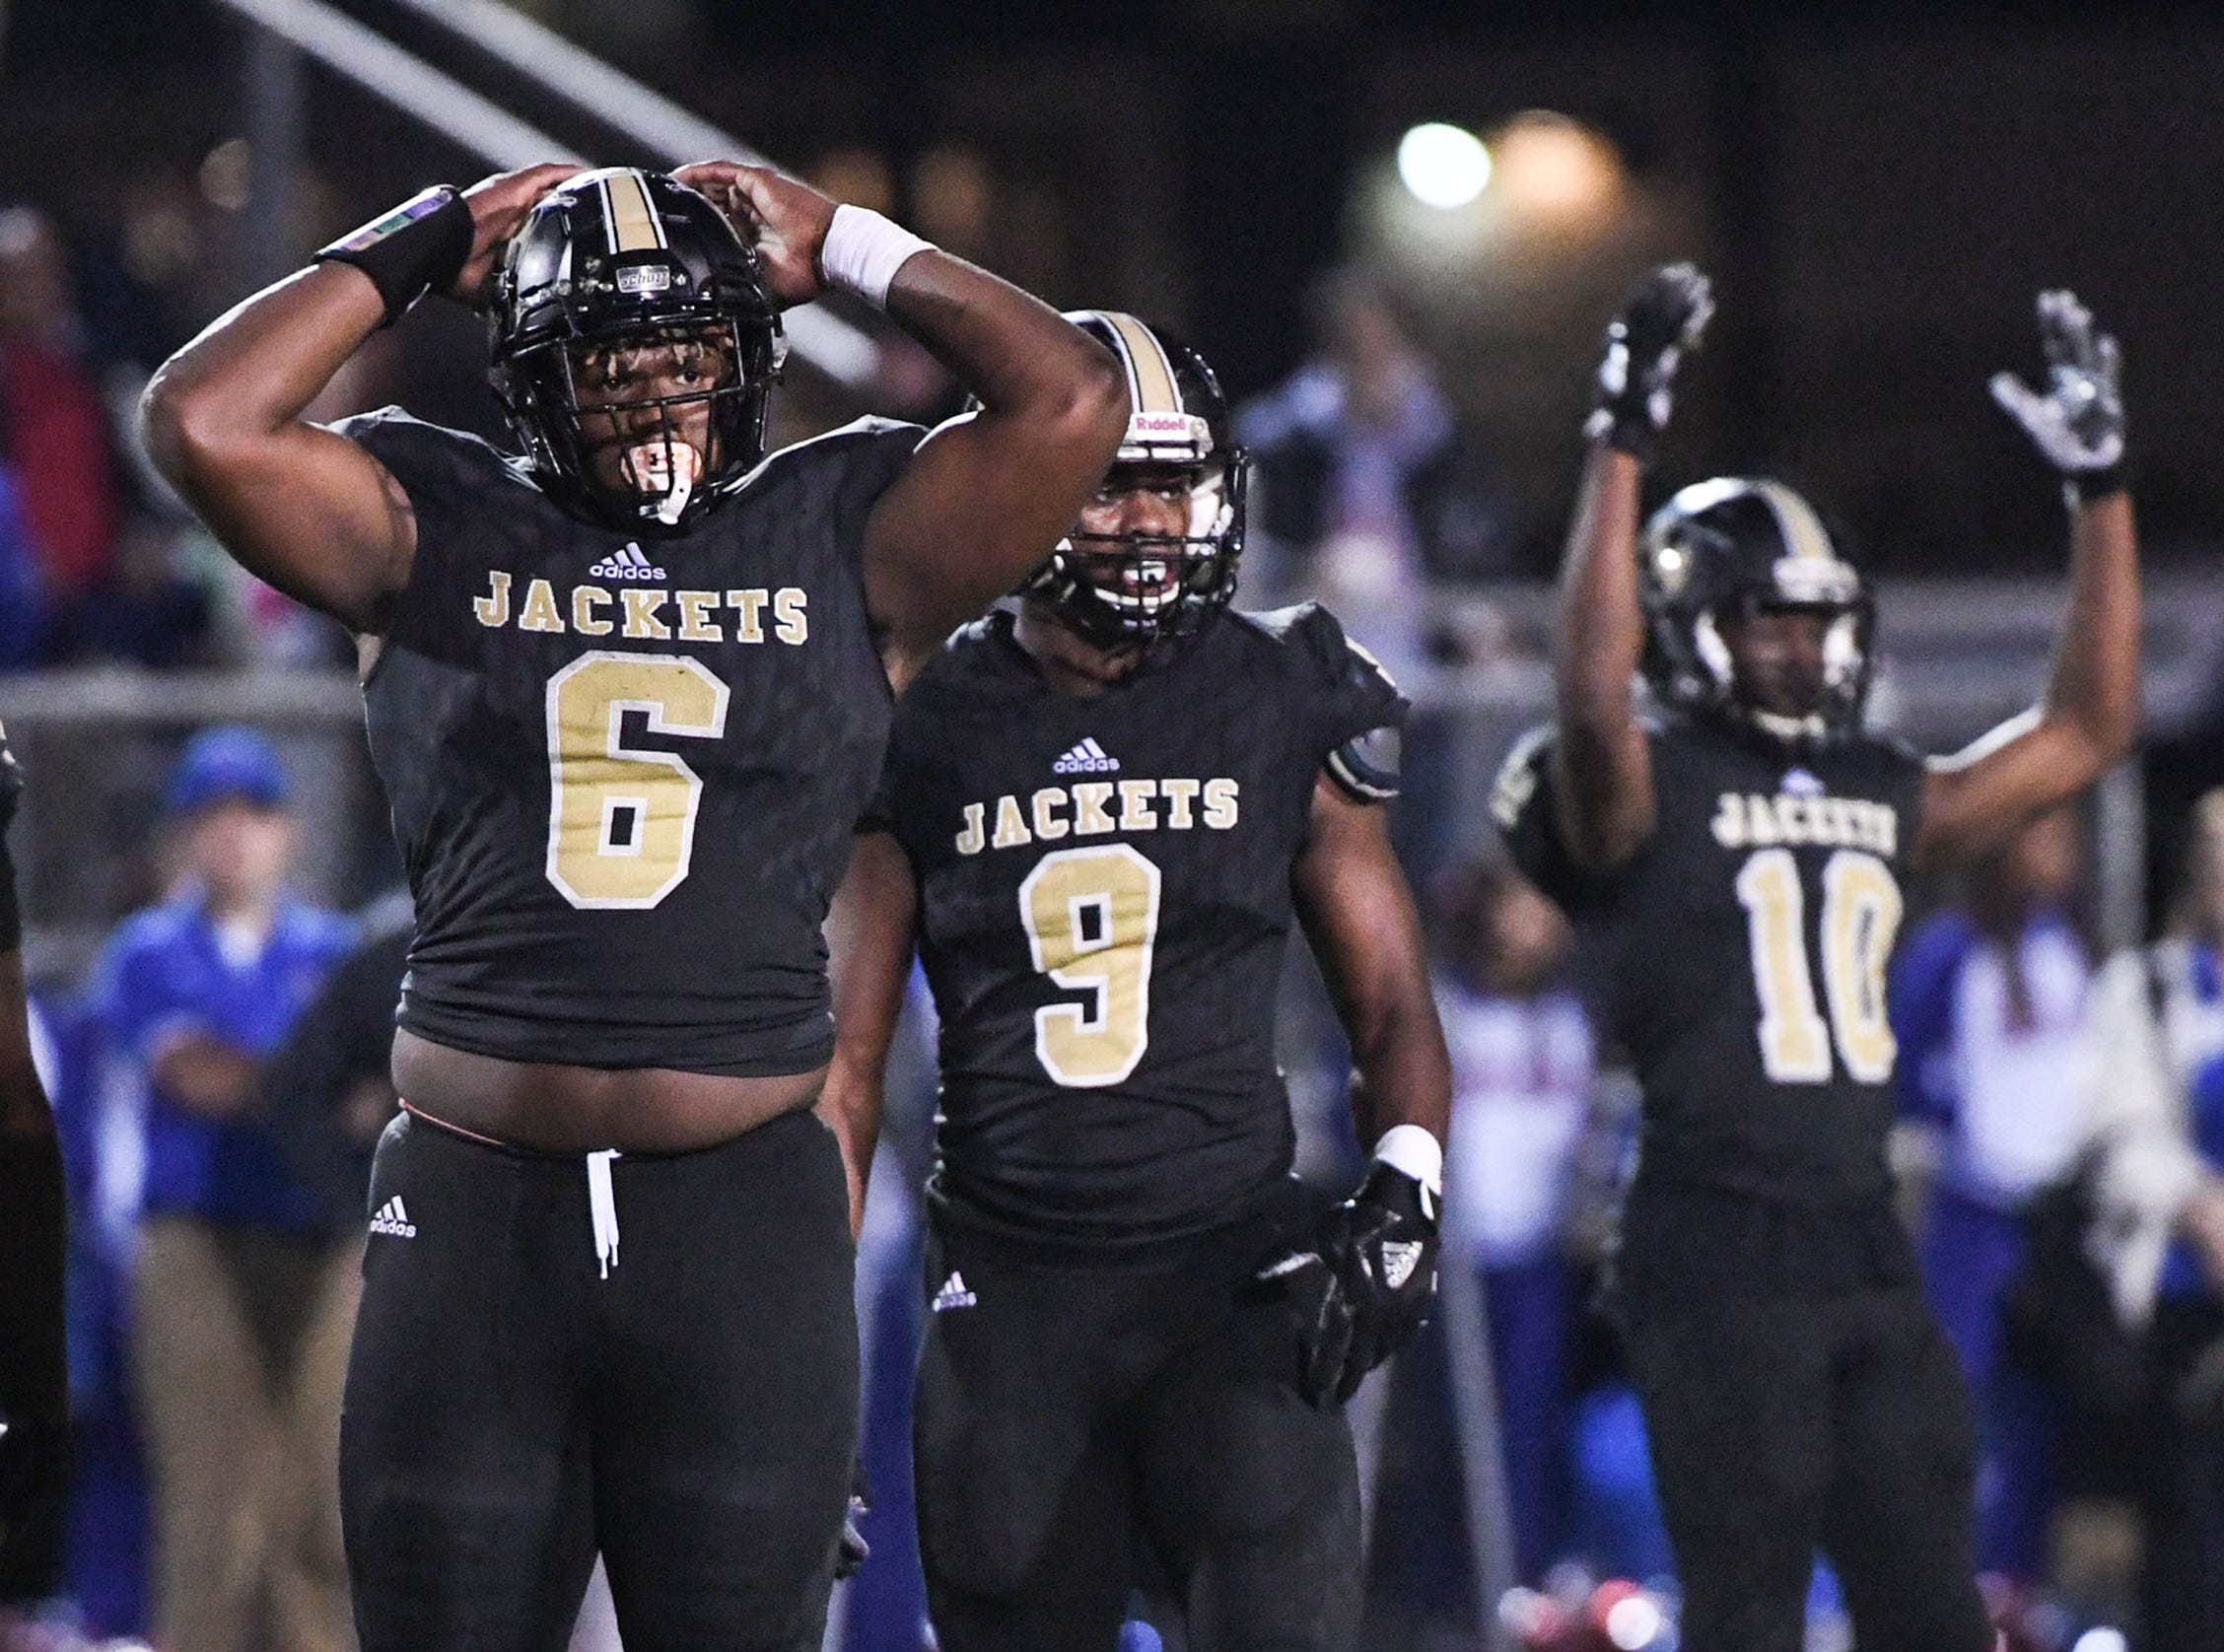 TL Hanna senior Zacch Pickens (6), left, Jay Lagroon (9) and Preston Pettway (10) wave to the crowd to get noisy against Byrnes during the first quarter of the Class AAAAA state playoffs at TL Hanna High School in Anderson on Friday, November 30, 2018.